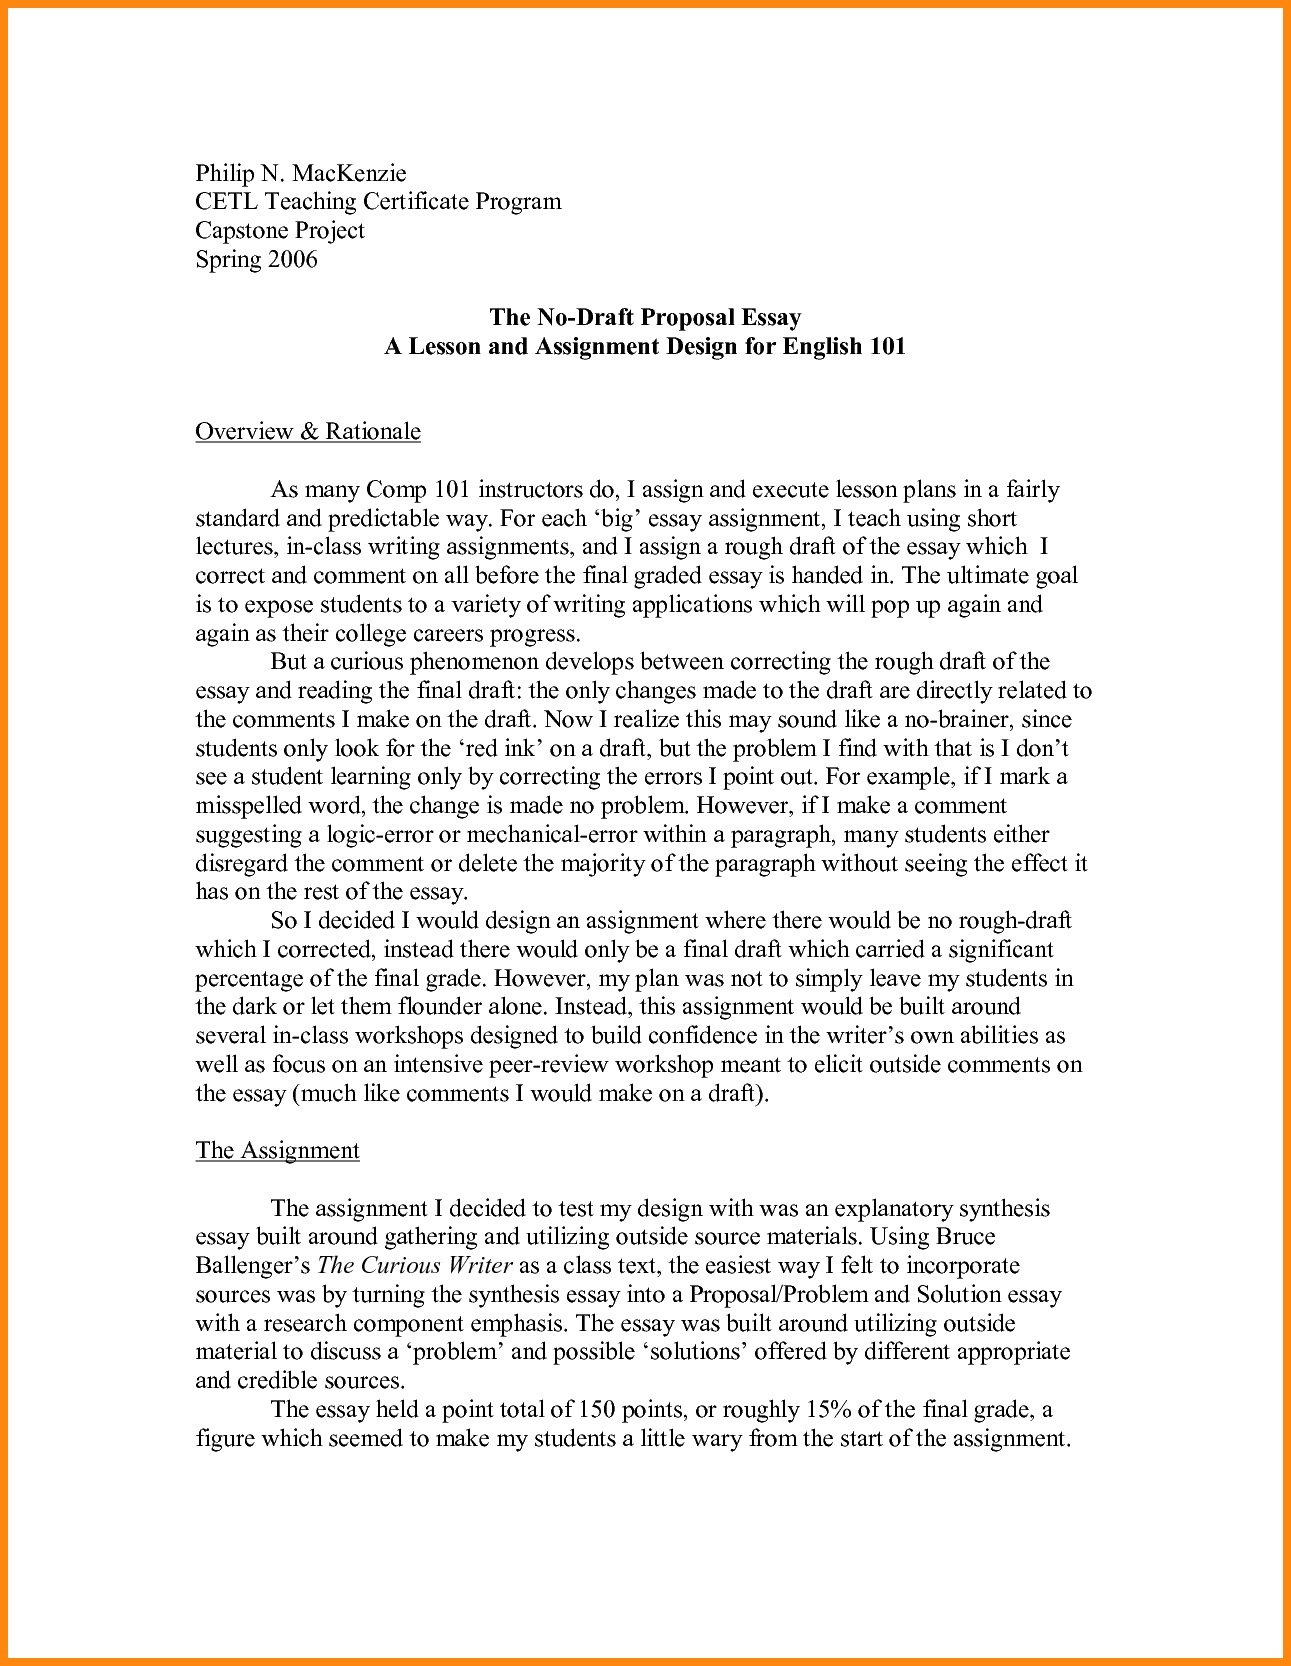 019 Research Paper Papers Topics For Finance Topic Proposal Example Essay At Phenomenal High School Students In Management Full